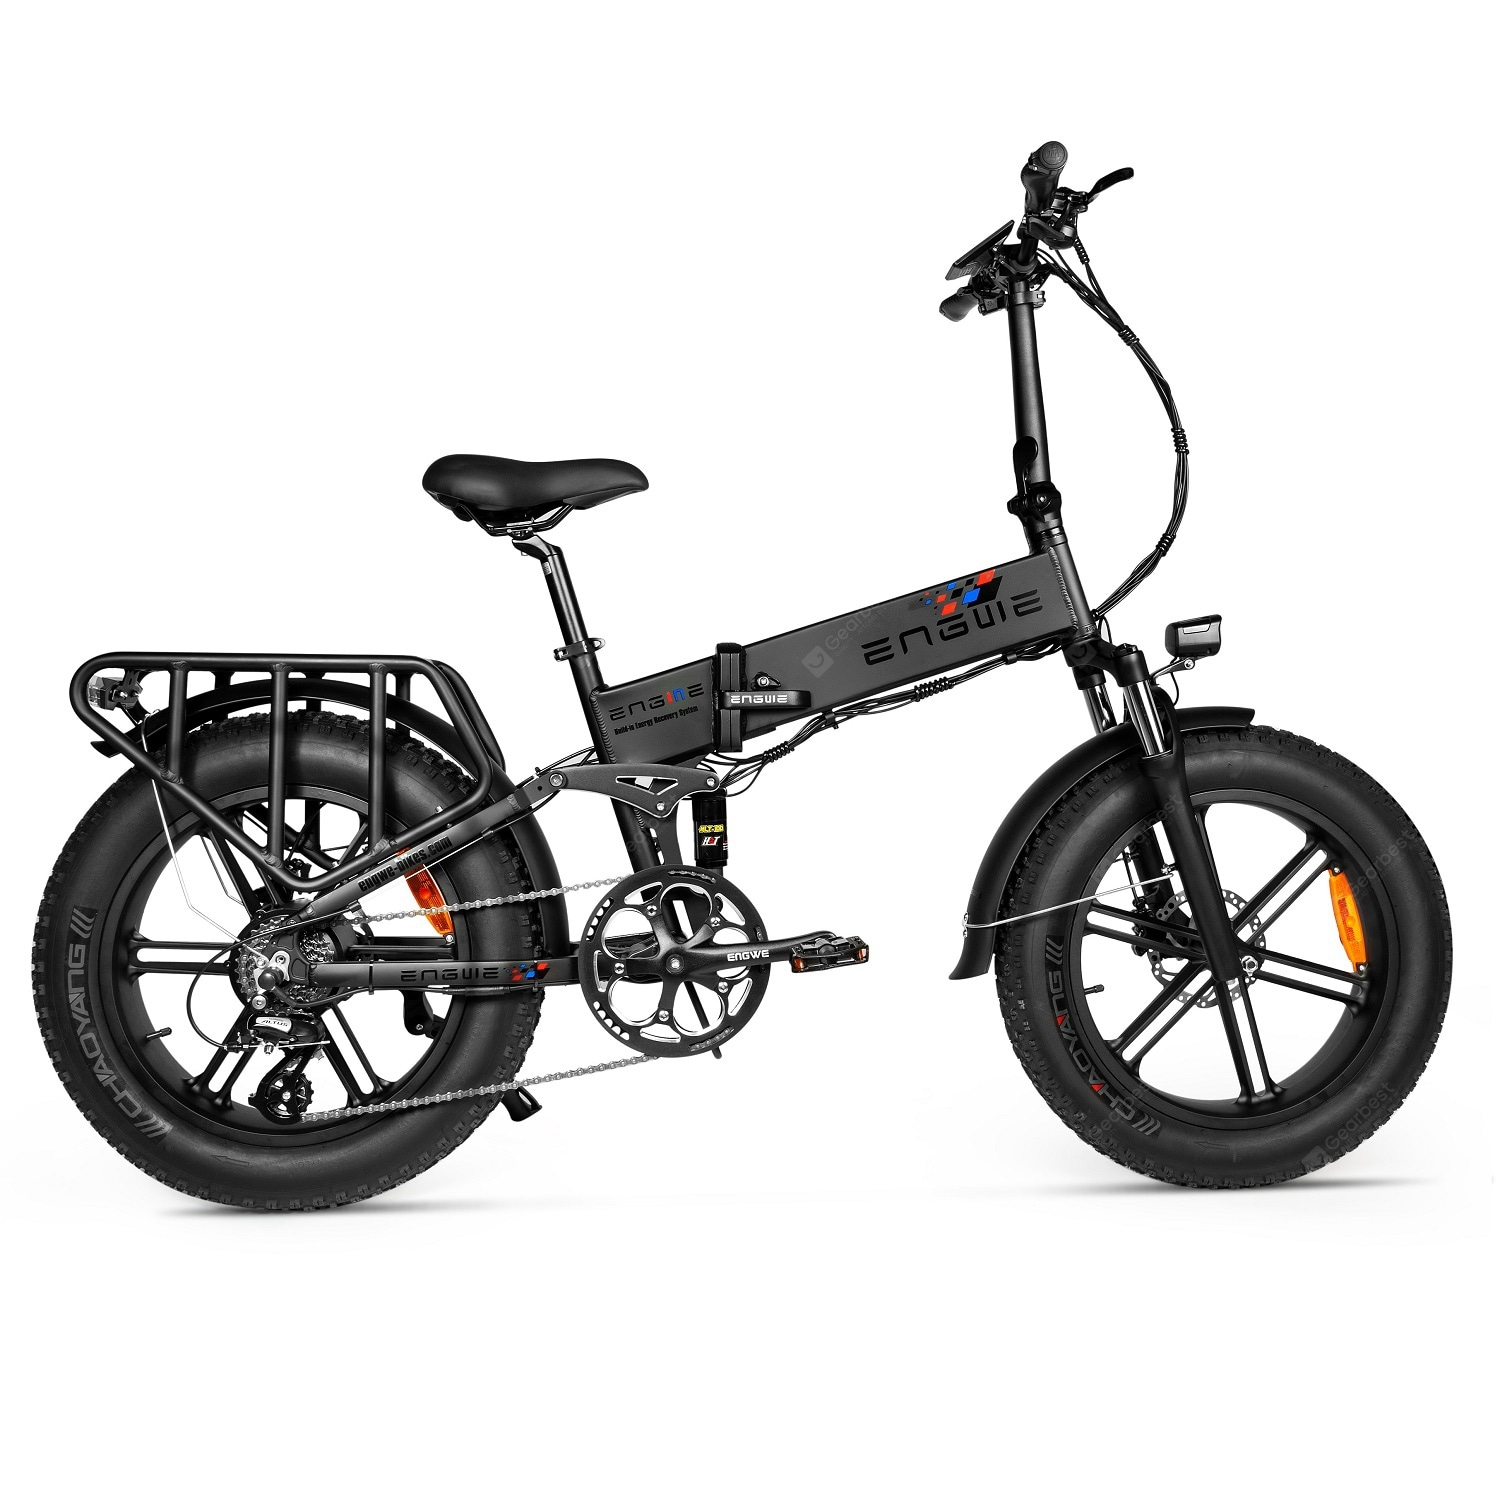 """ENGWE ENGINE PRO 750W Folding Fat Tire Electric Bike with 12.8Ah Battery and Hydraulic Suspension"" 127"